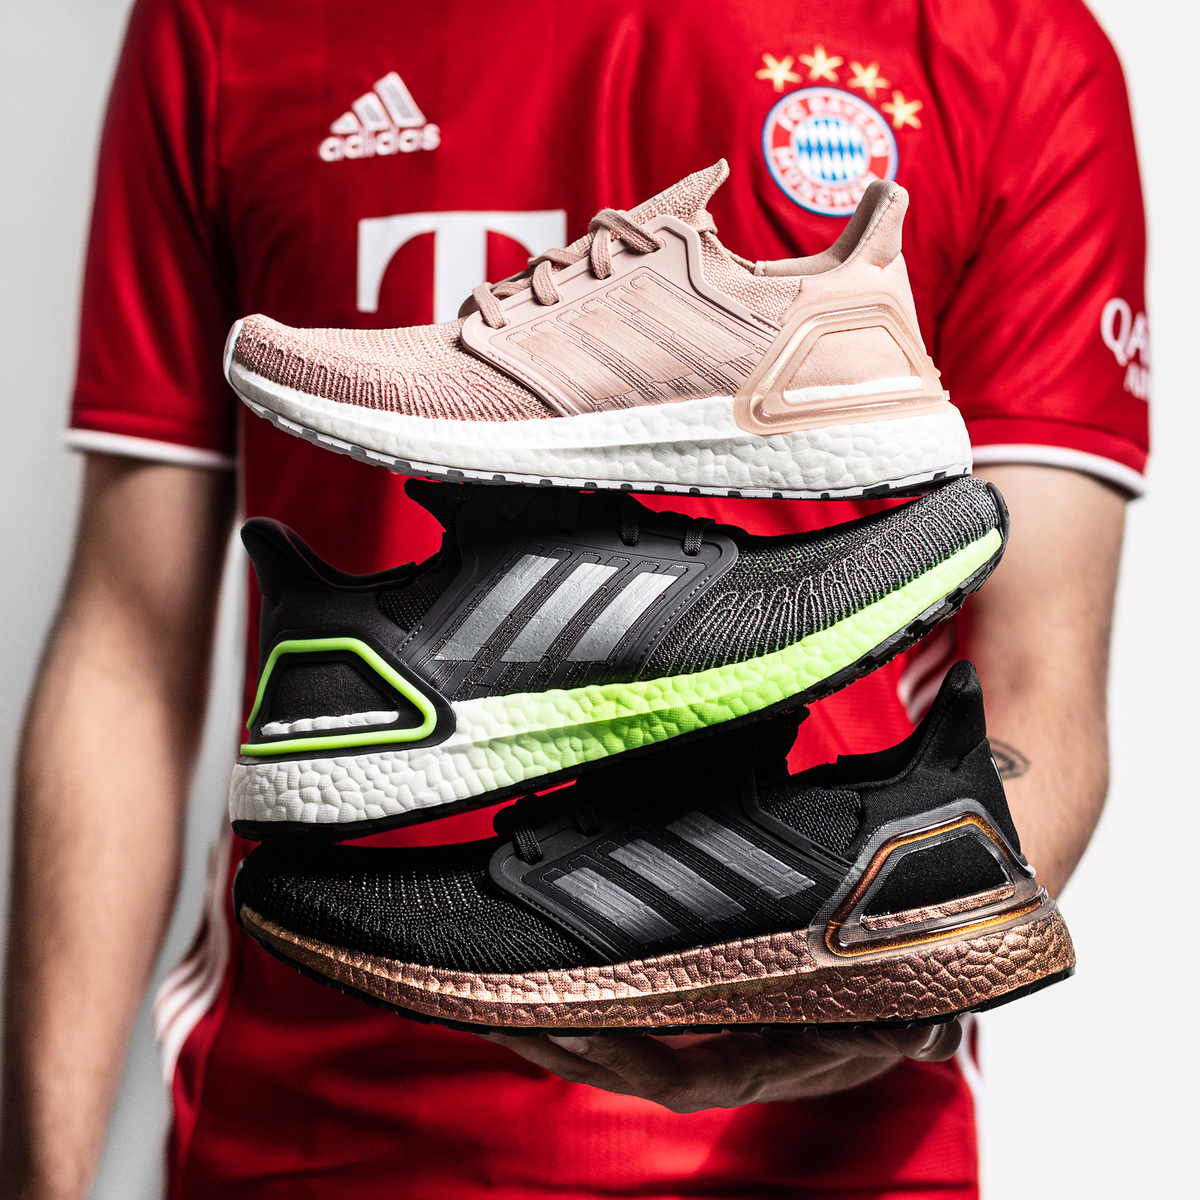 Boost your sneaker game with one of these beauties 🌪️ Reveal your pick below 🤙🏽  https://t.co/dJ9CdQ33p8 —  #unisportlife #adidasfootball #adidas #sneakers #ultraboost https://t.co/lK6cqi91tj